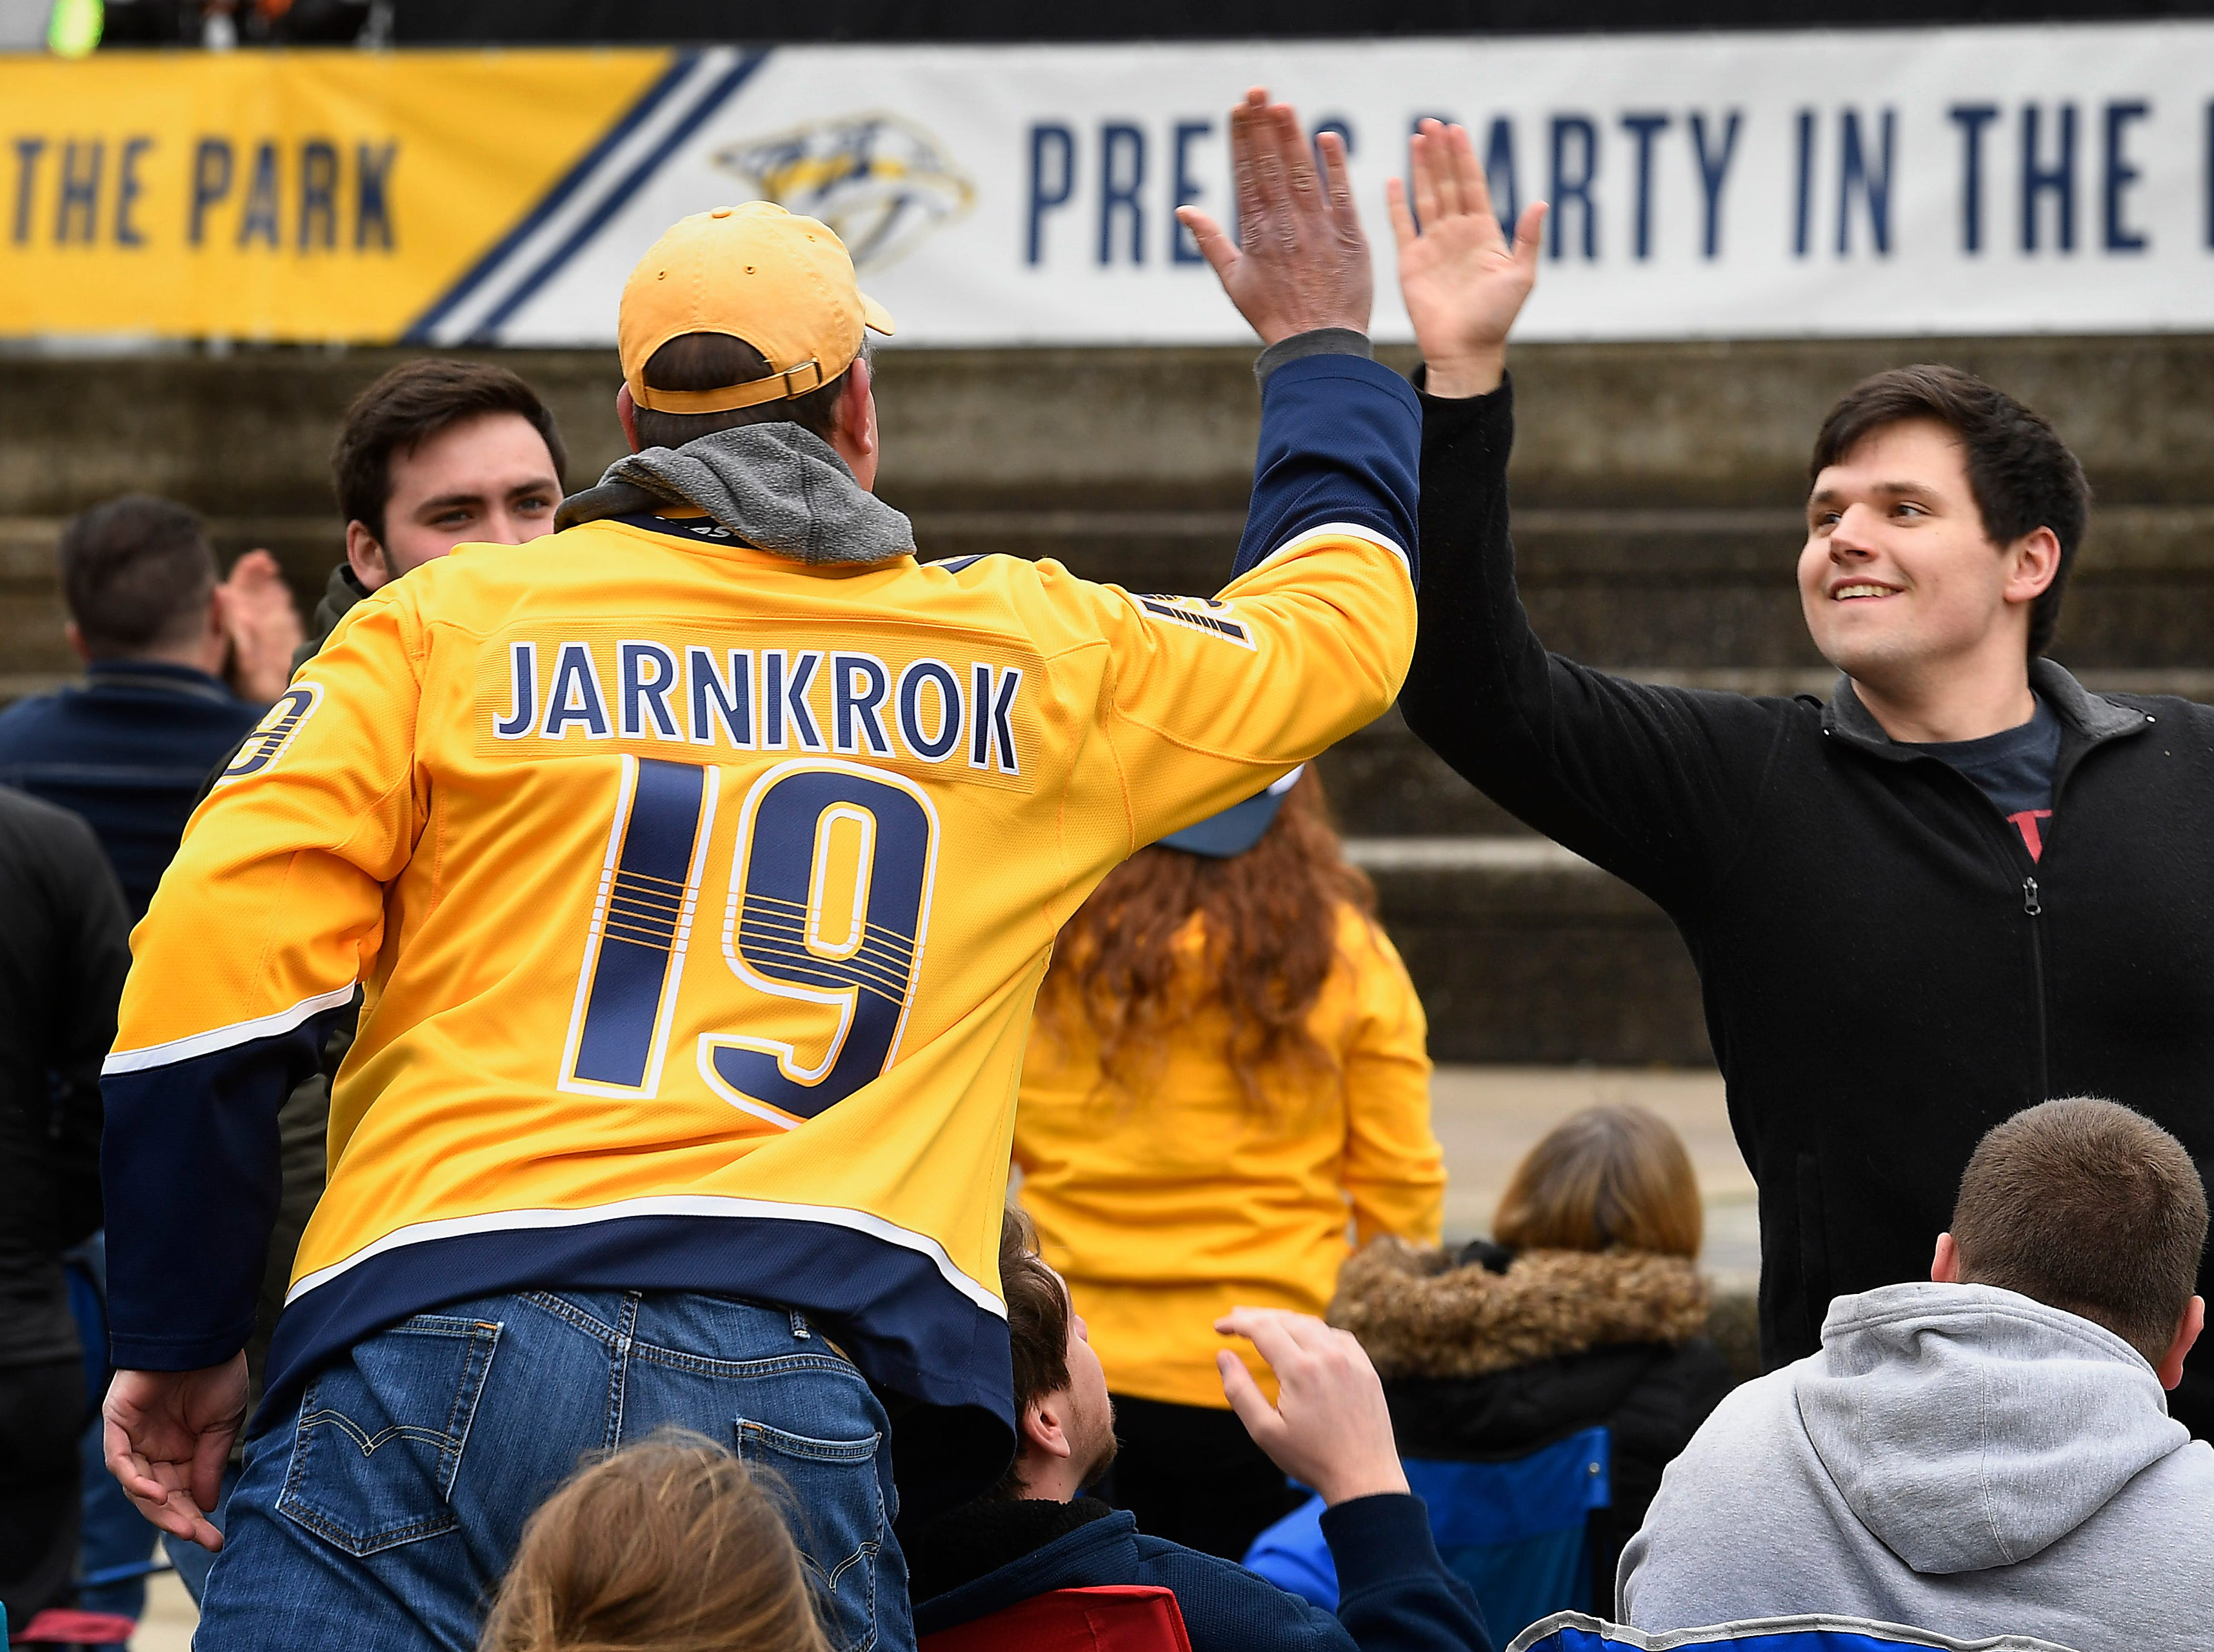 Kurt Oberstealf and Mark England high five after the Predators score in the first period during the watch party of the divisional semifinal game against the Stars at Bridgestone ArenaSaturday, April 20, 2019, in Nashville, Tenn.